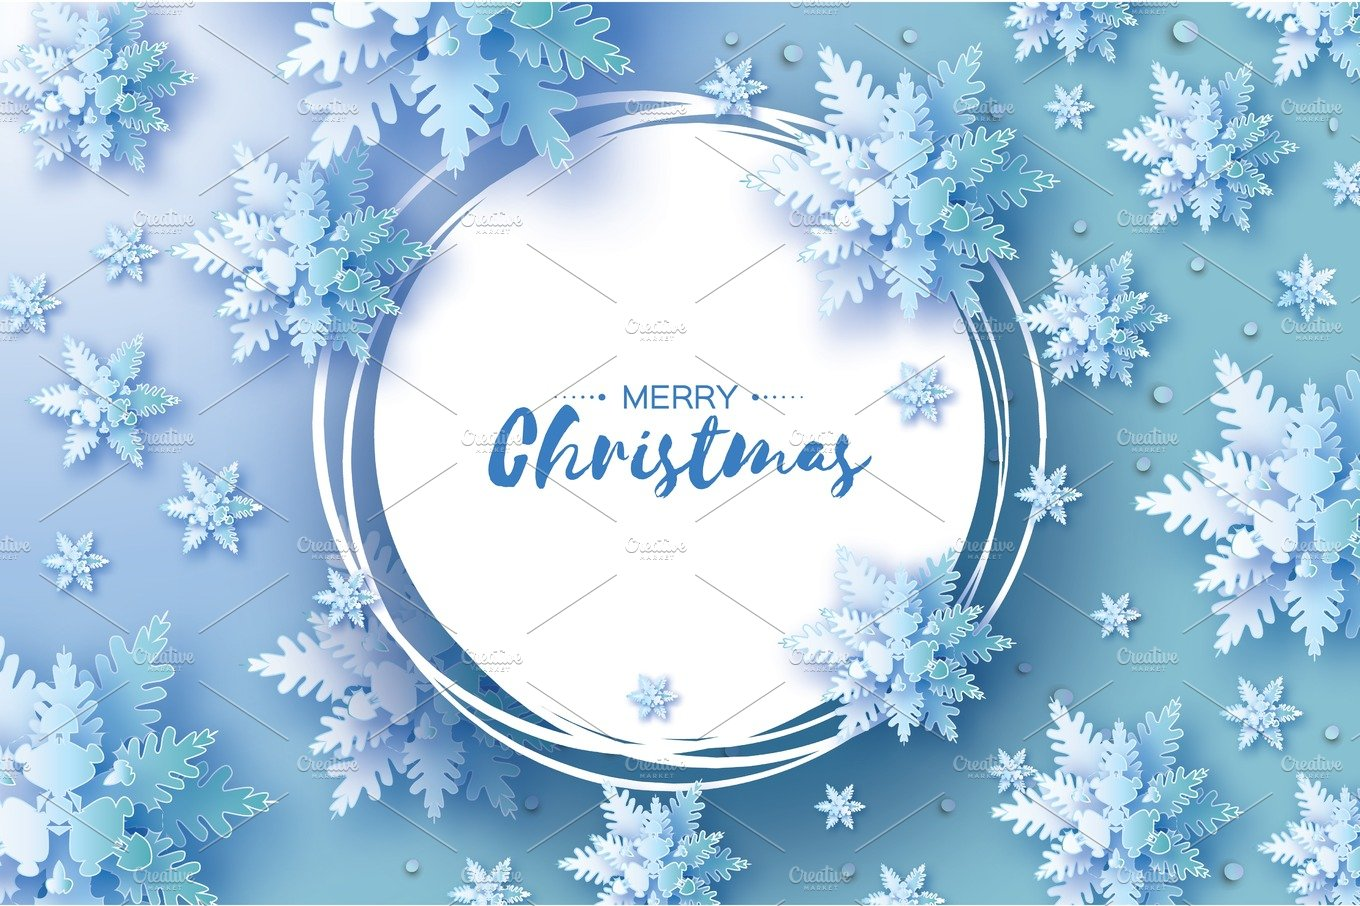 Blue Merry Christmas Greetings Card White Paper Cut Snow Flake